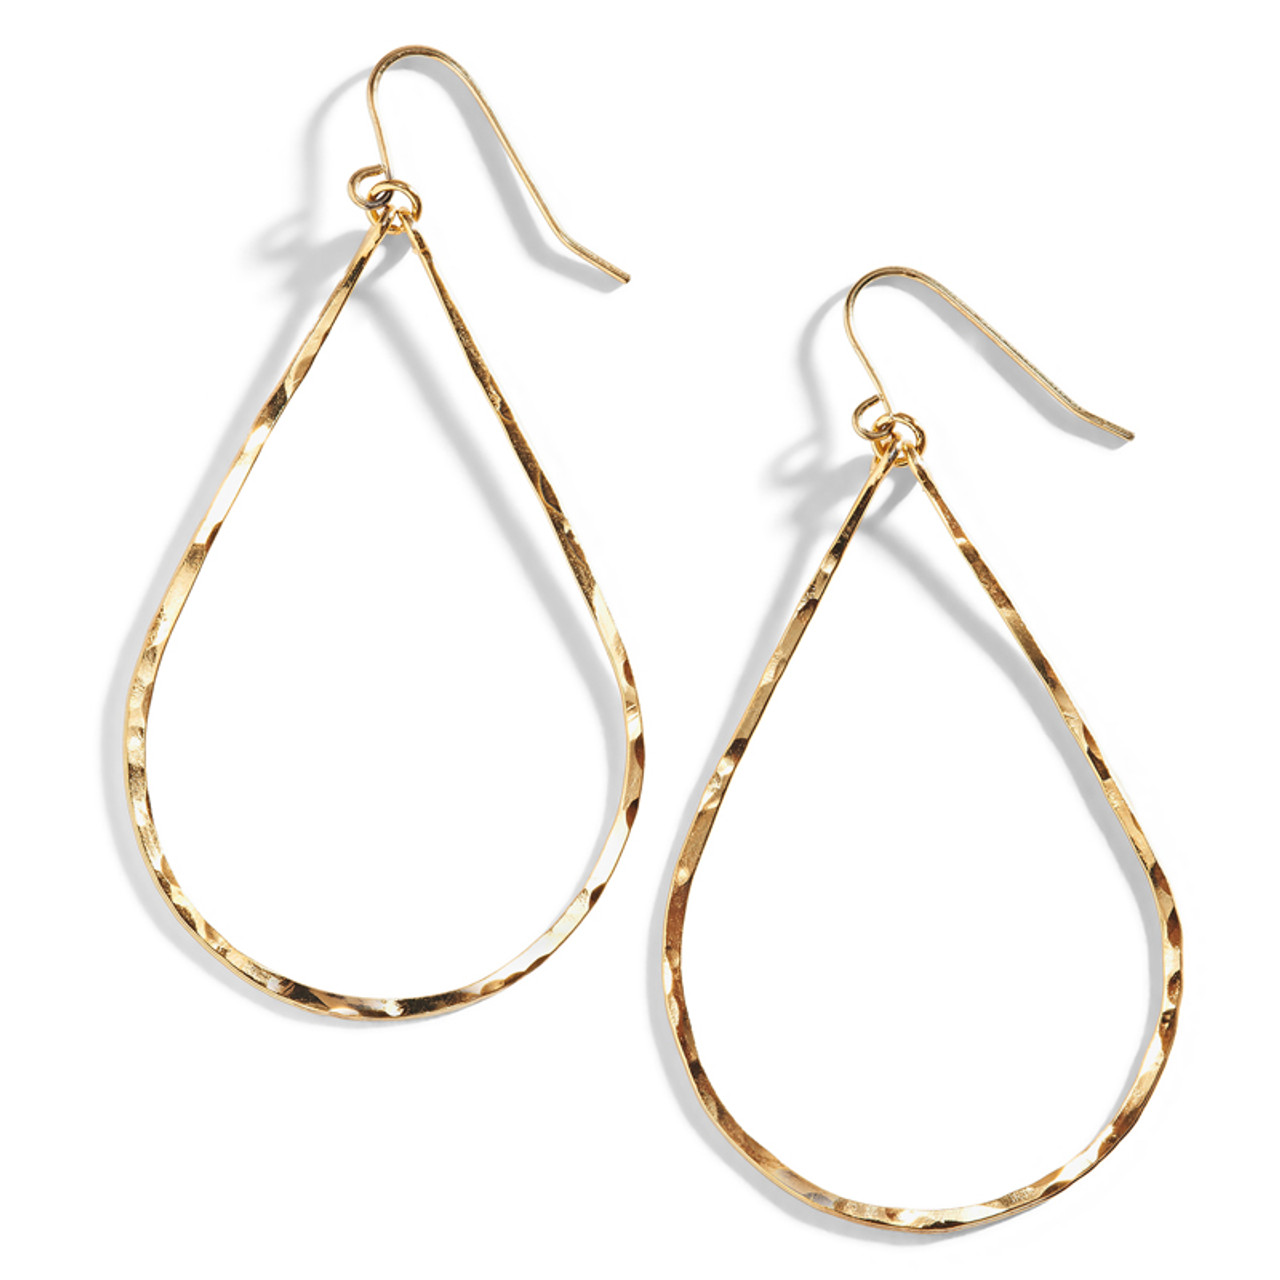 itm high hook colour uk pair loading quality is spiral s seller gold earrings image wire